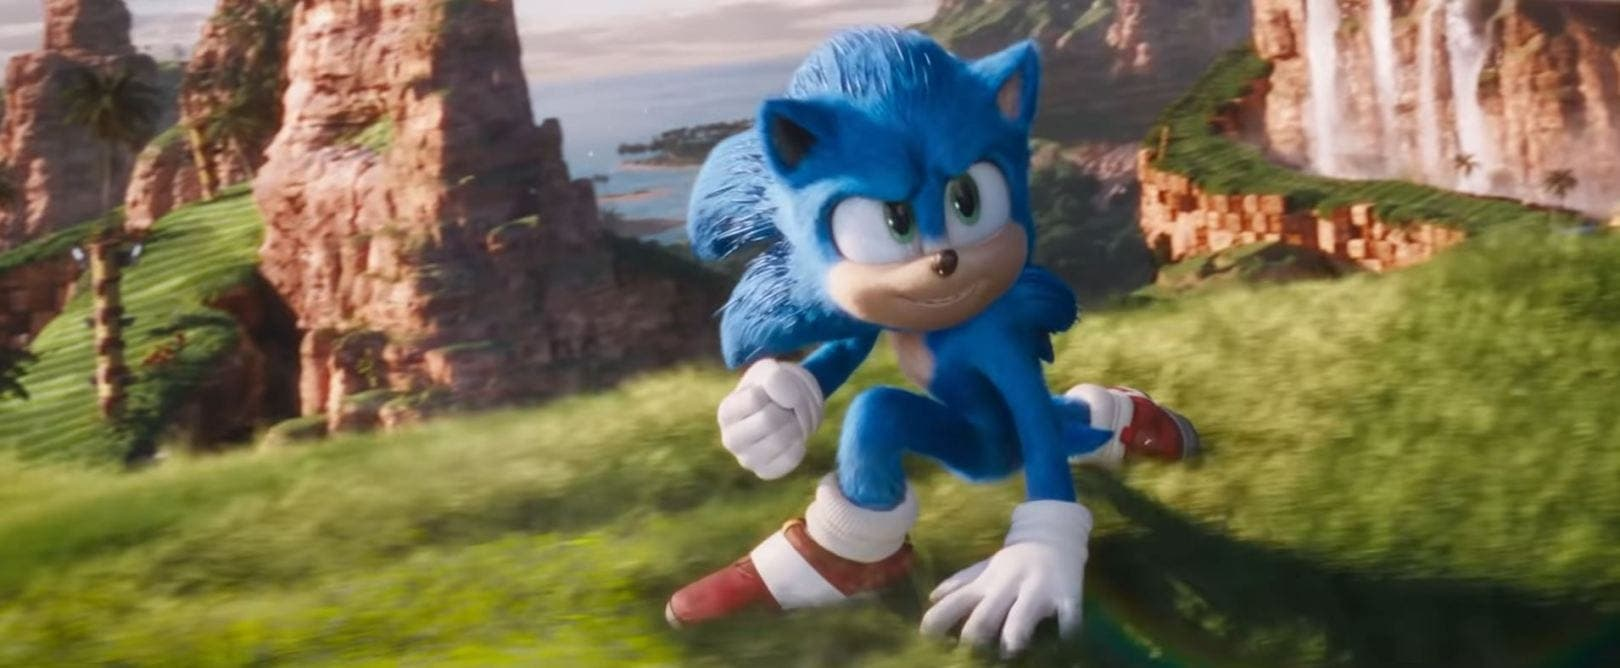 SONIC THE HEDGEHOG : LA SUITE DU FILM SORTIRA EN 2022